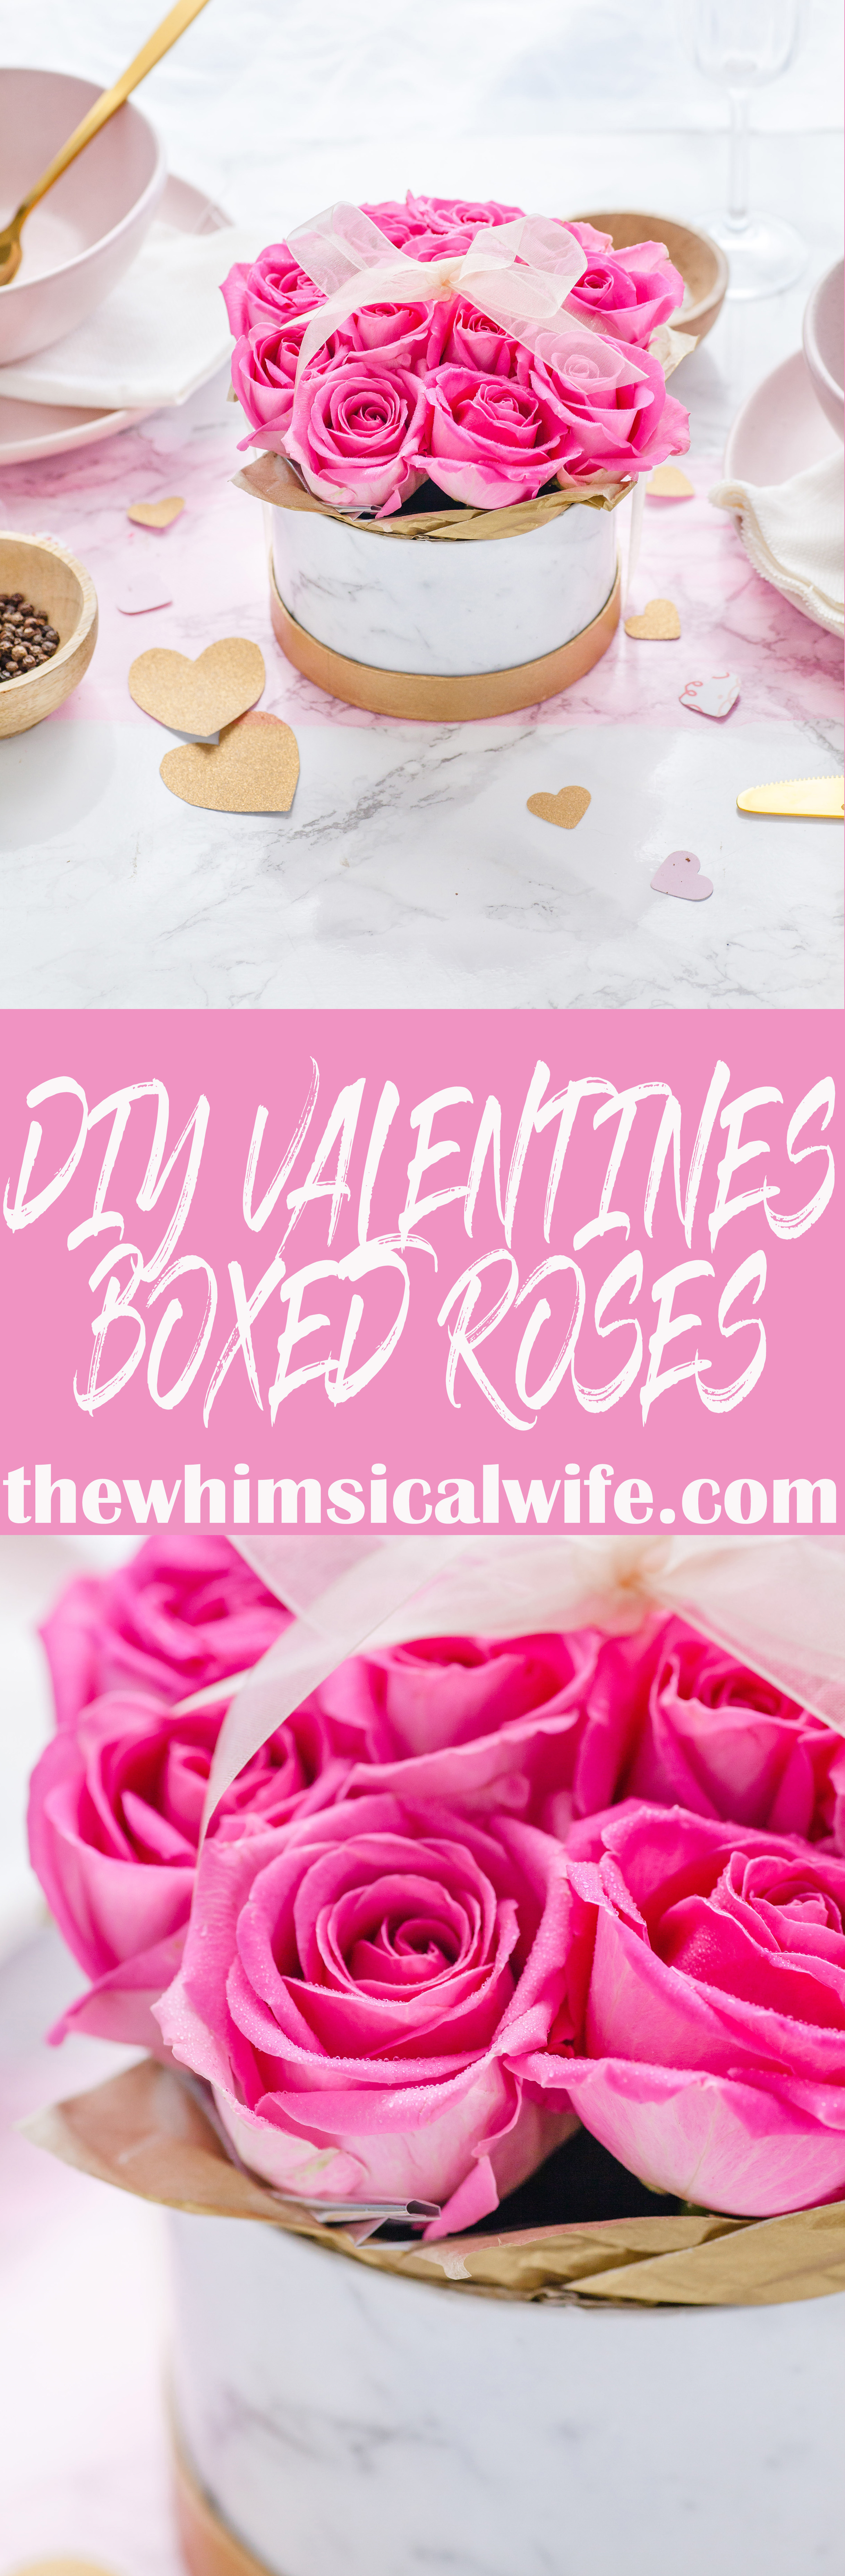 DIY Valentines Boxed Roses + Video | The Whimsical Wife